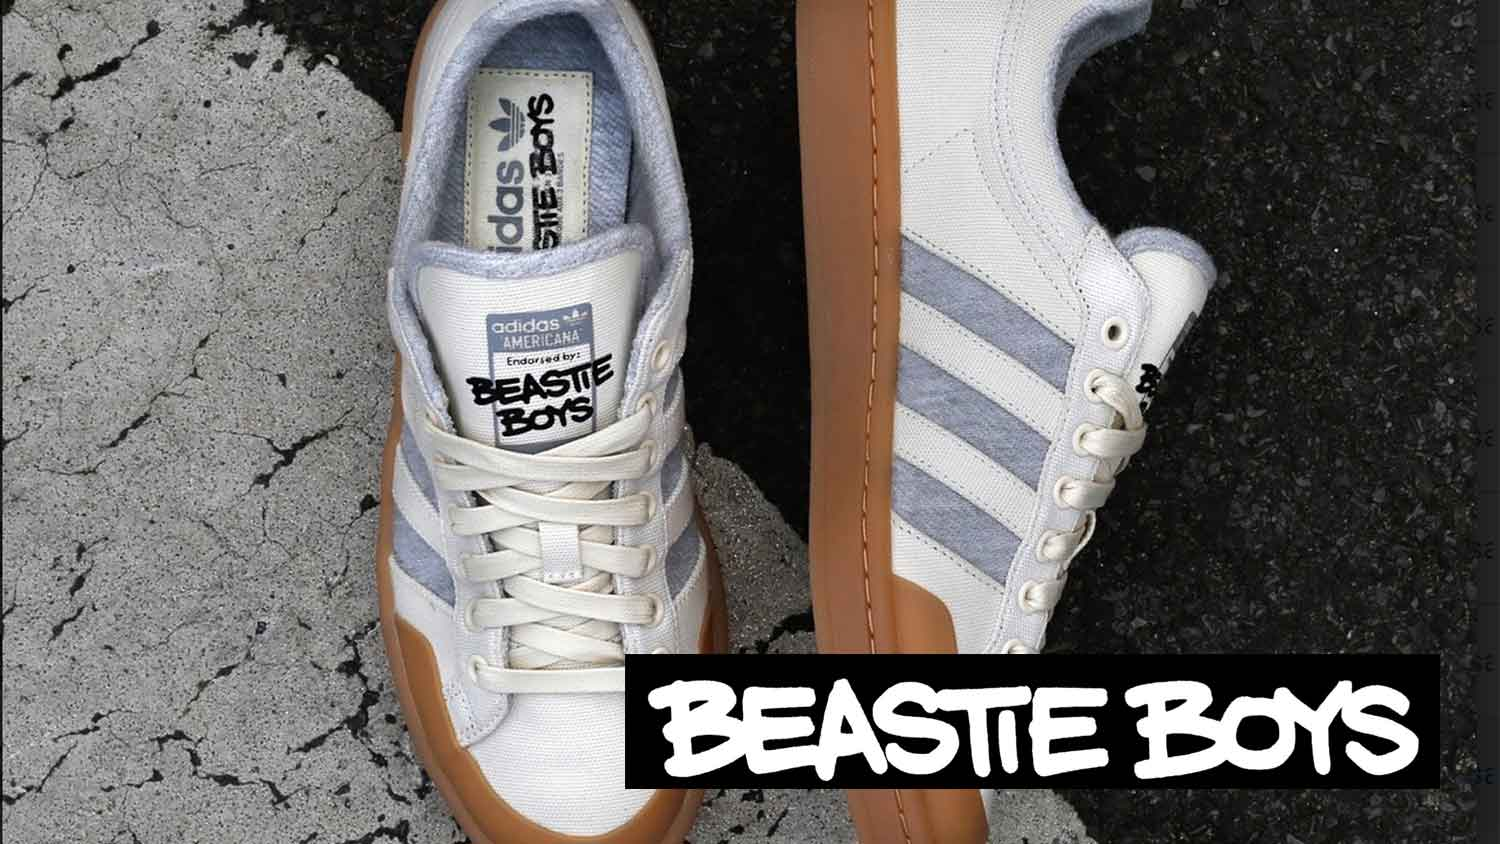 Adidas Just Launched Vegan Beastie Boys Shoes